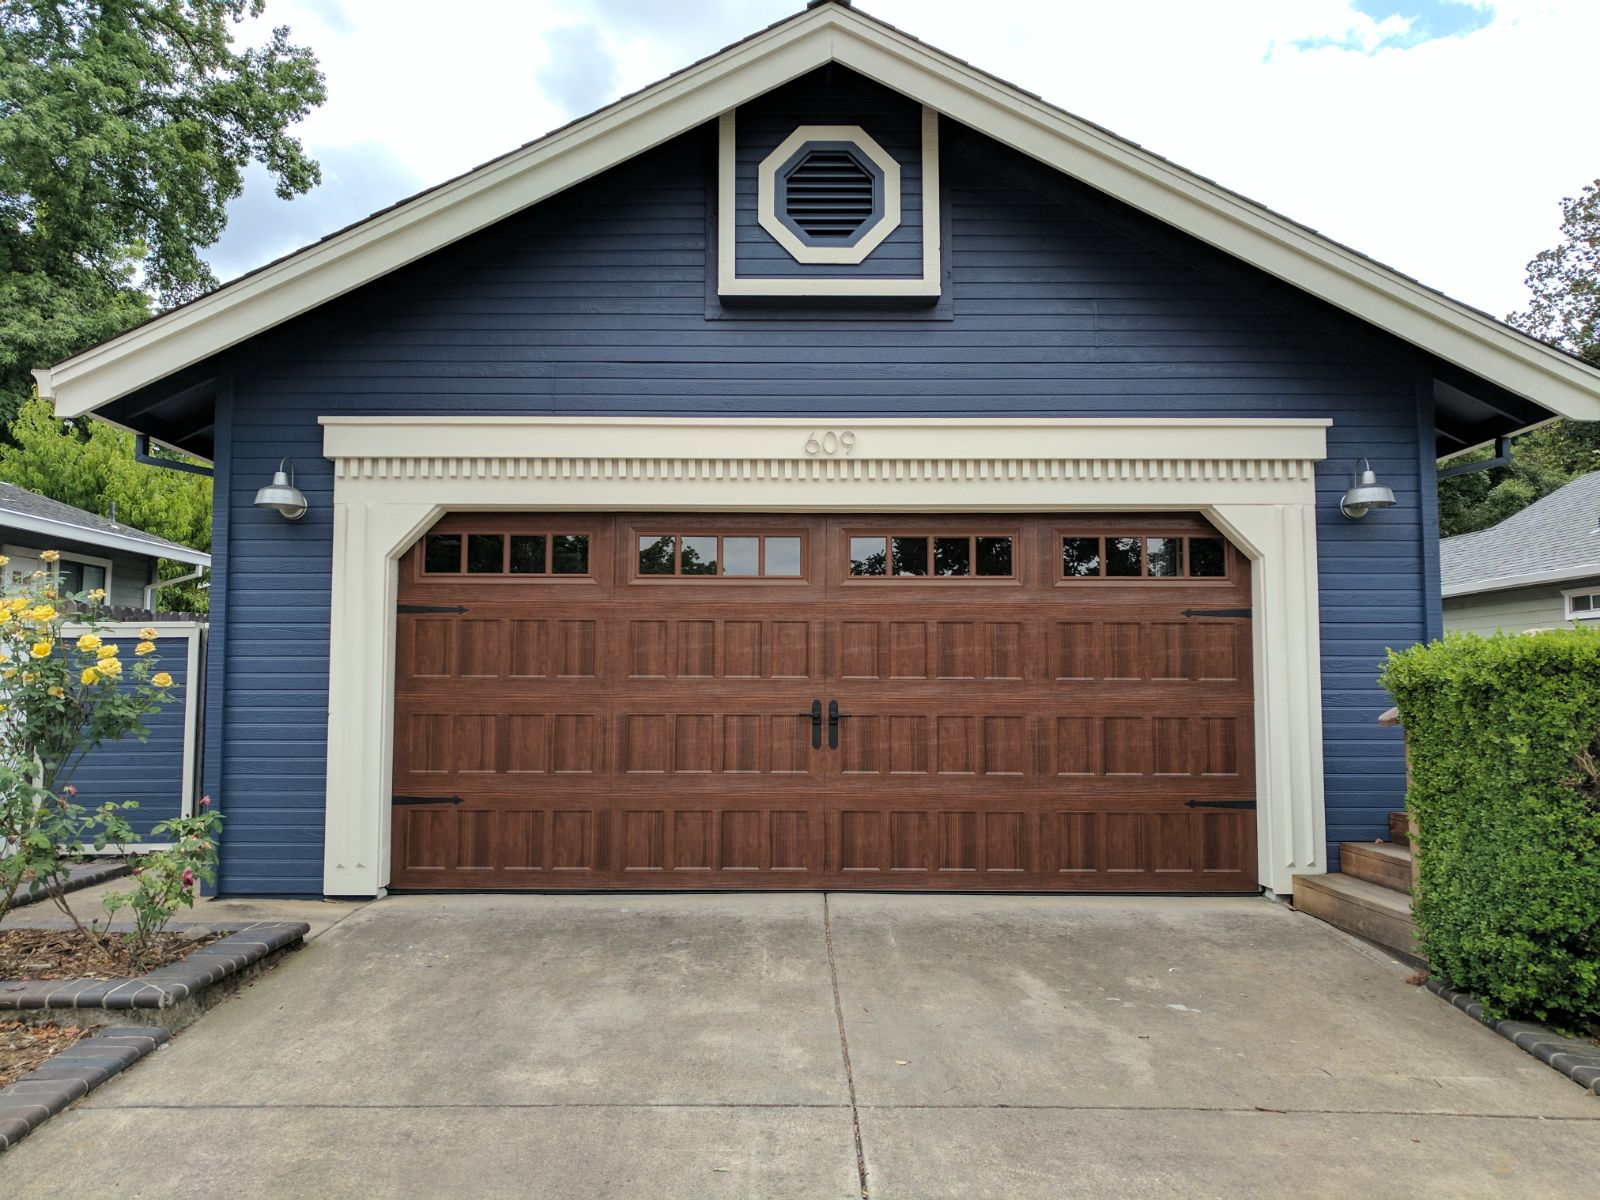 Oak Summit 1000 Garage Doors By Amarr  Sugar Land Garage. Frameless Glass Doors. Genie Garage Door Opener Model H6000a. Black French Door Refrigerator. Garage Floor Epoxy Reviews. Cheap Wall Cabinets For Garage. 8 X 16 Garage Door. Anaheim Garage Door Opener. Craftsman Garage Door Opener Battery